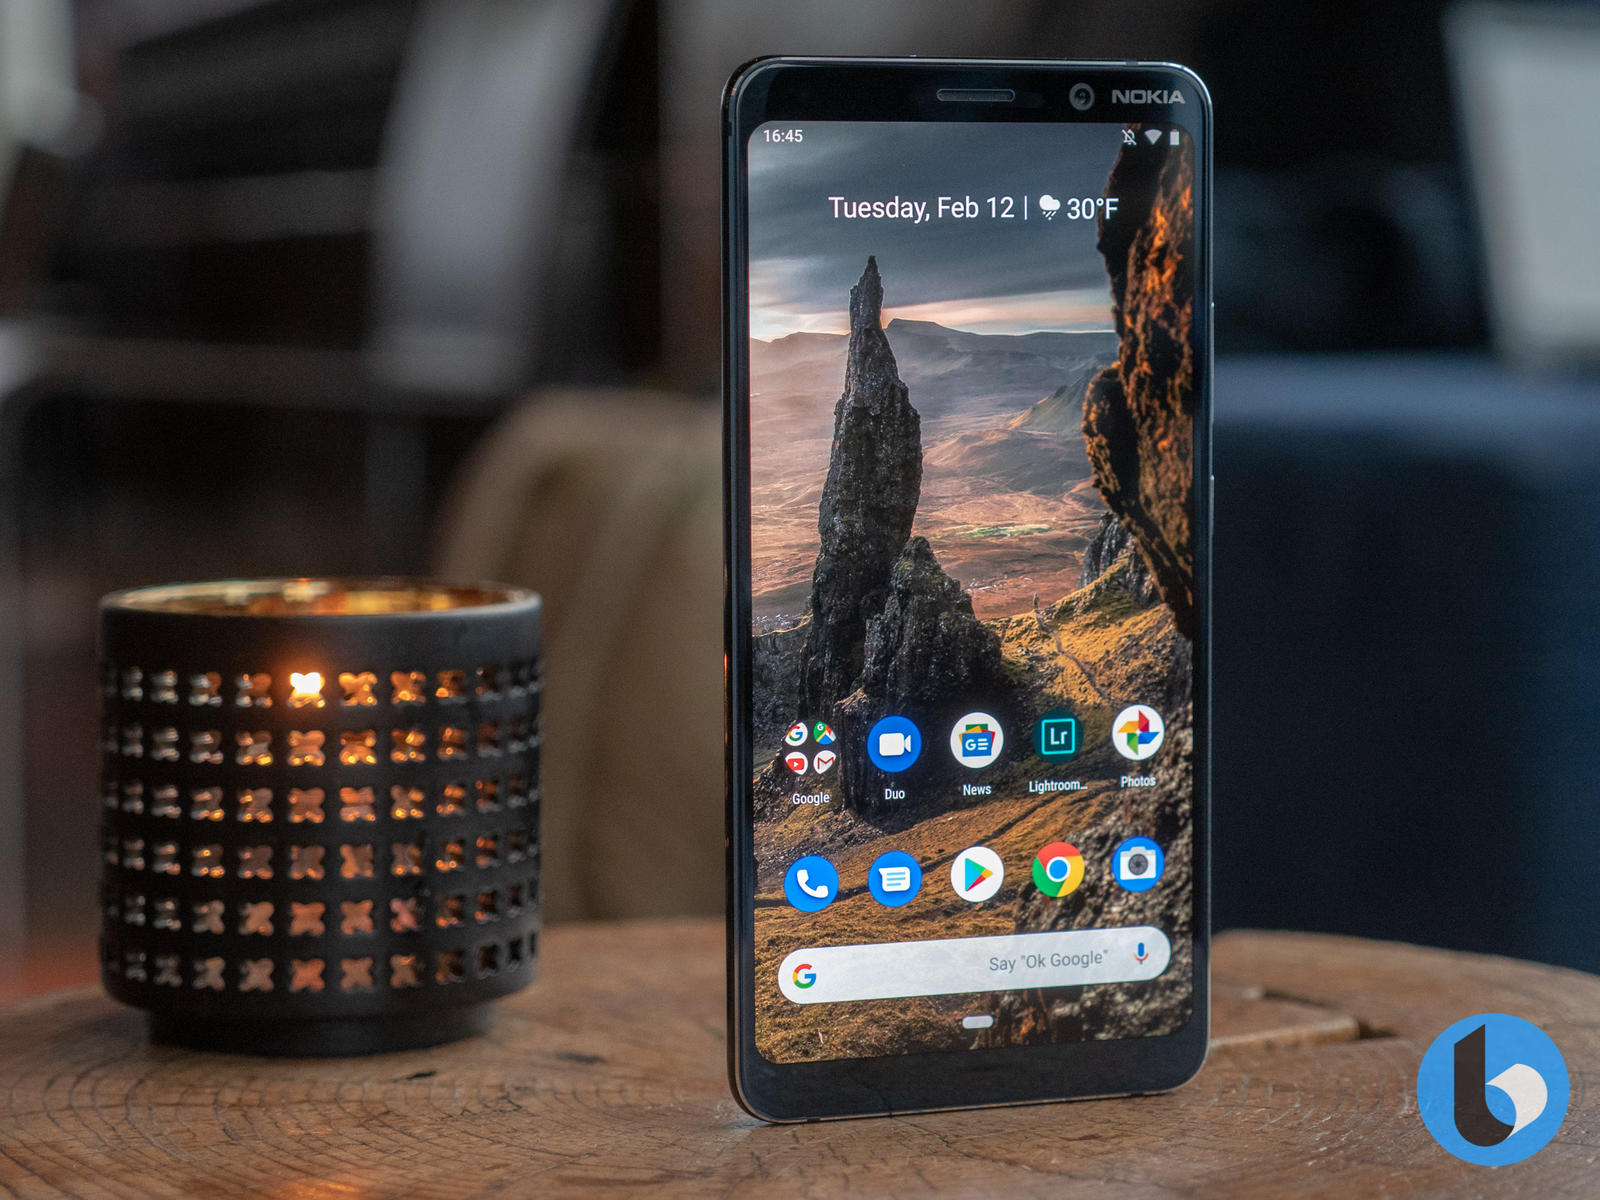 Check out these samples from the Nokia 9 PureView's five